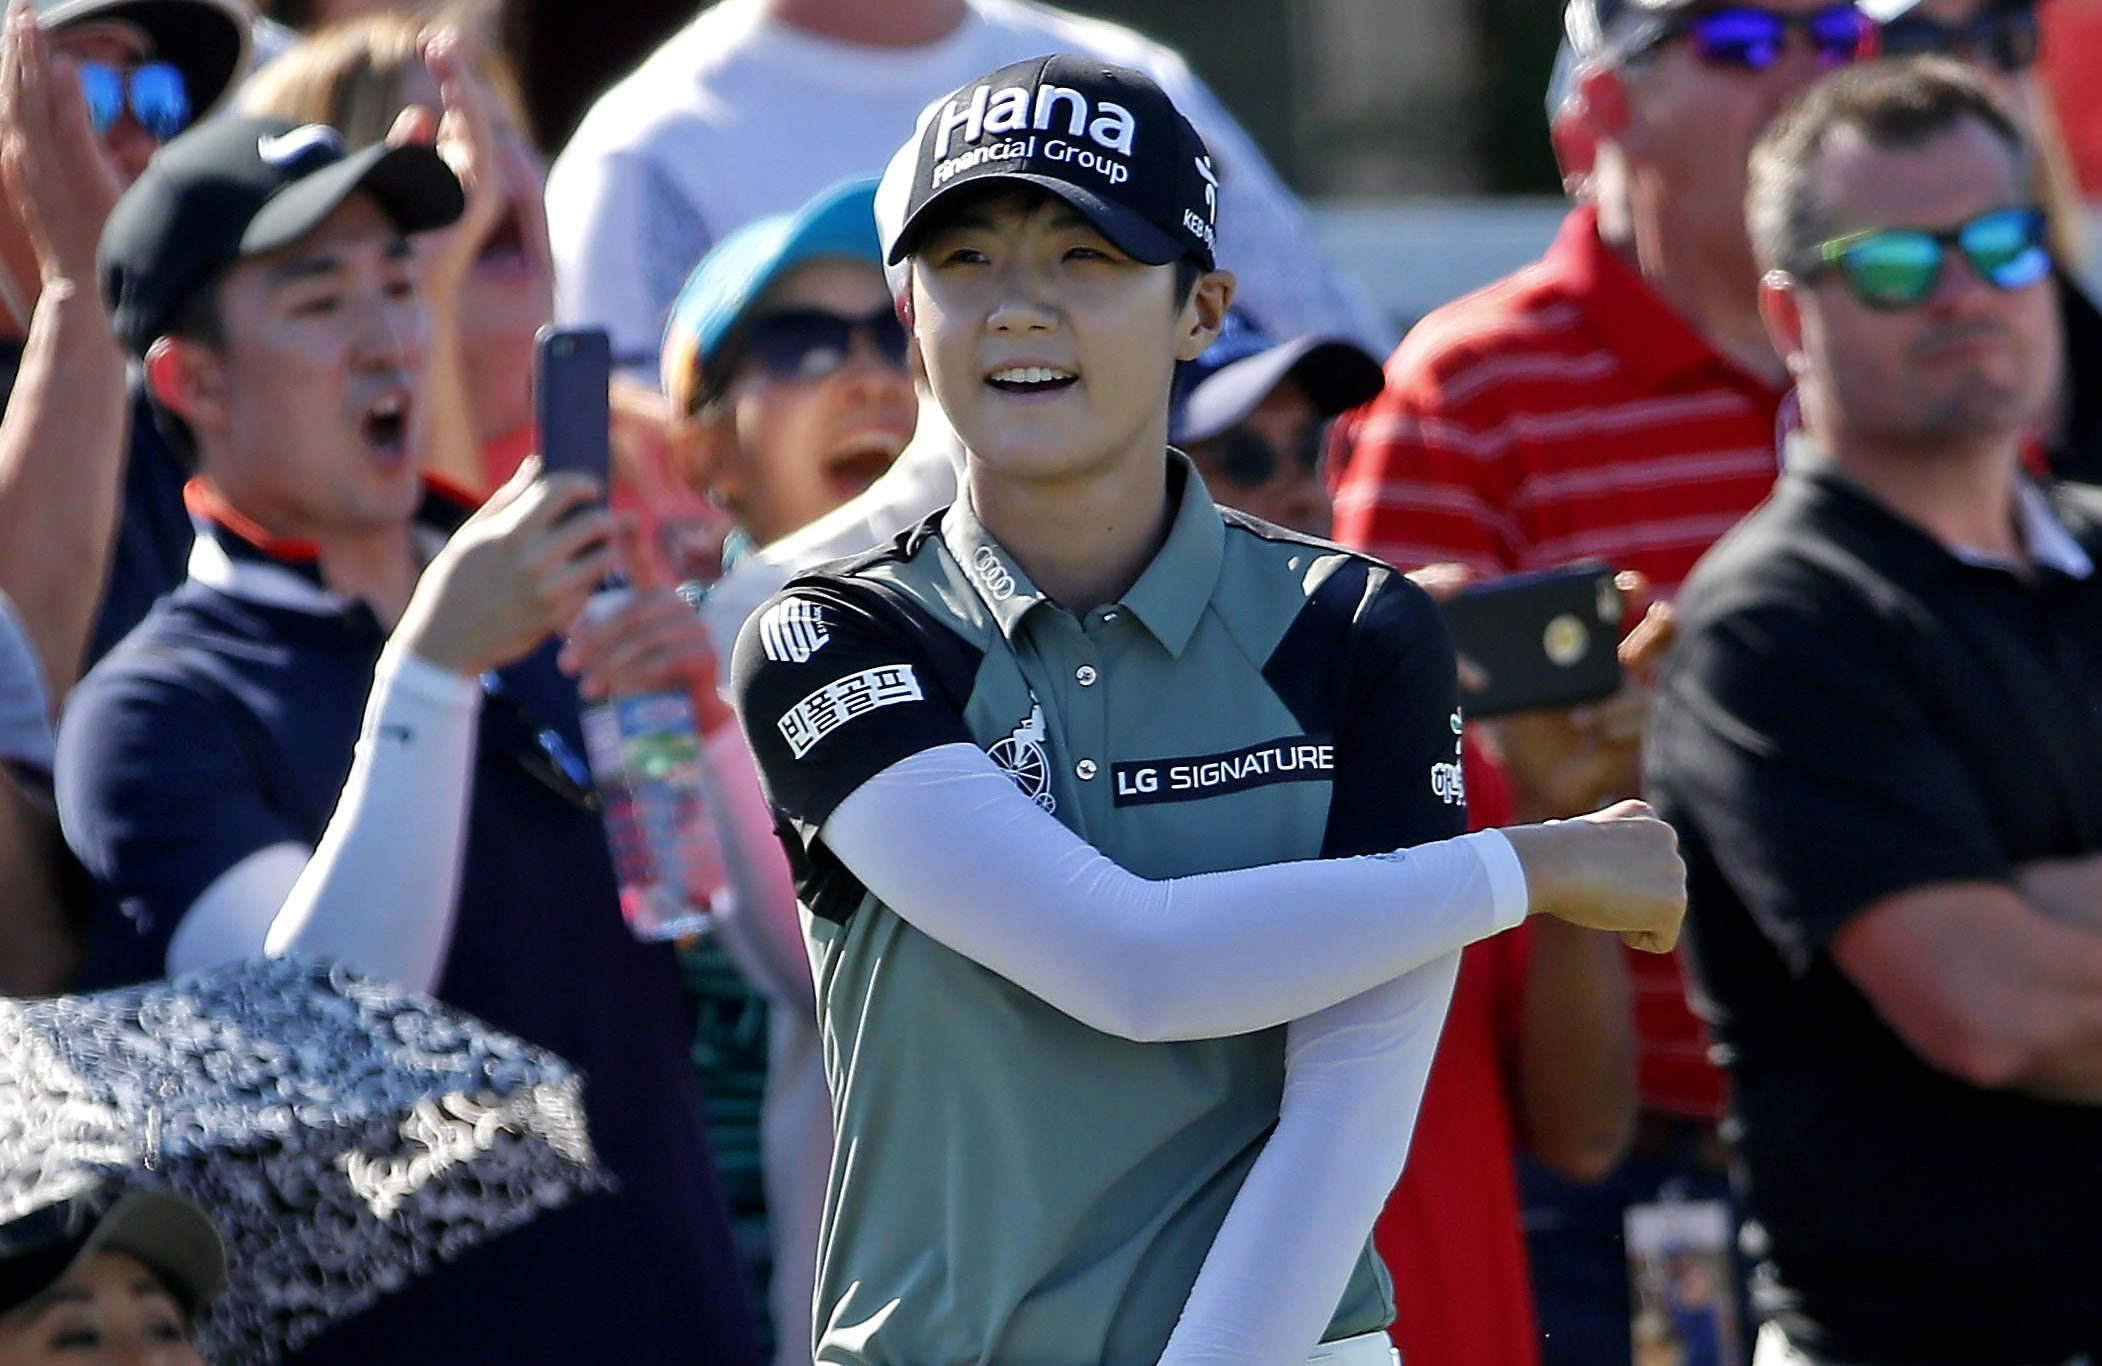 Sung Hyun Park, of South Korea, celebrates after she hit the ball in on the 18th green during the LPGA tour Volunteers of America Texas Shootout golf tournament in The Colony, Texas, Sunday, May 6, 2018. (Jae S. Lee/The Dallas Morning News via AP)